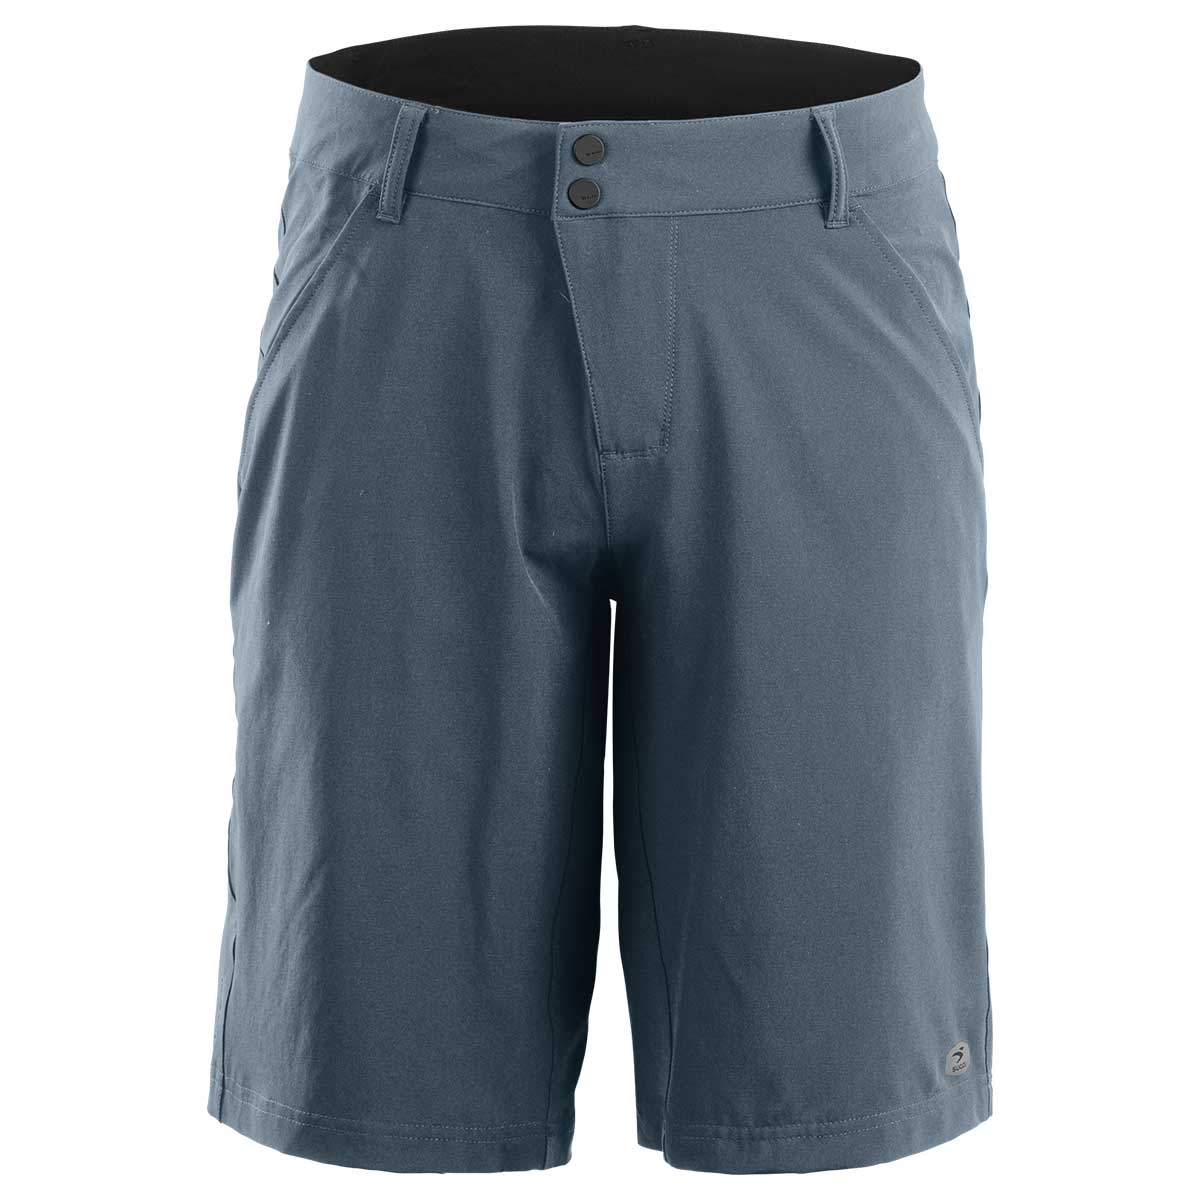 Sugoi men's RPM Lined Shorts in Coal Blue